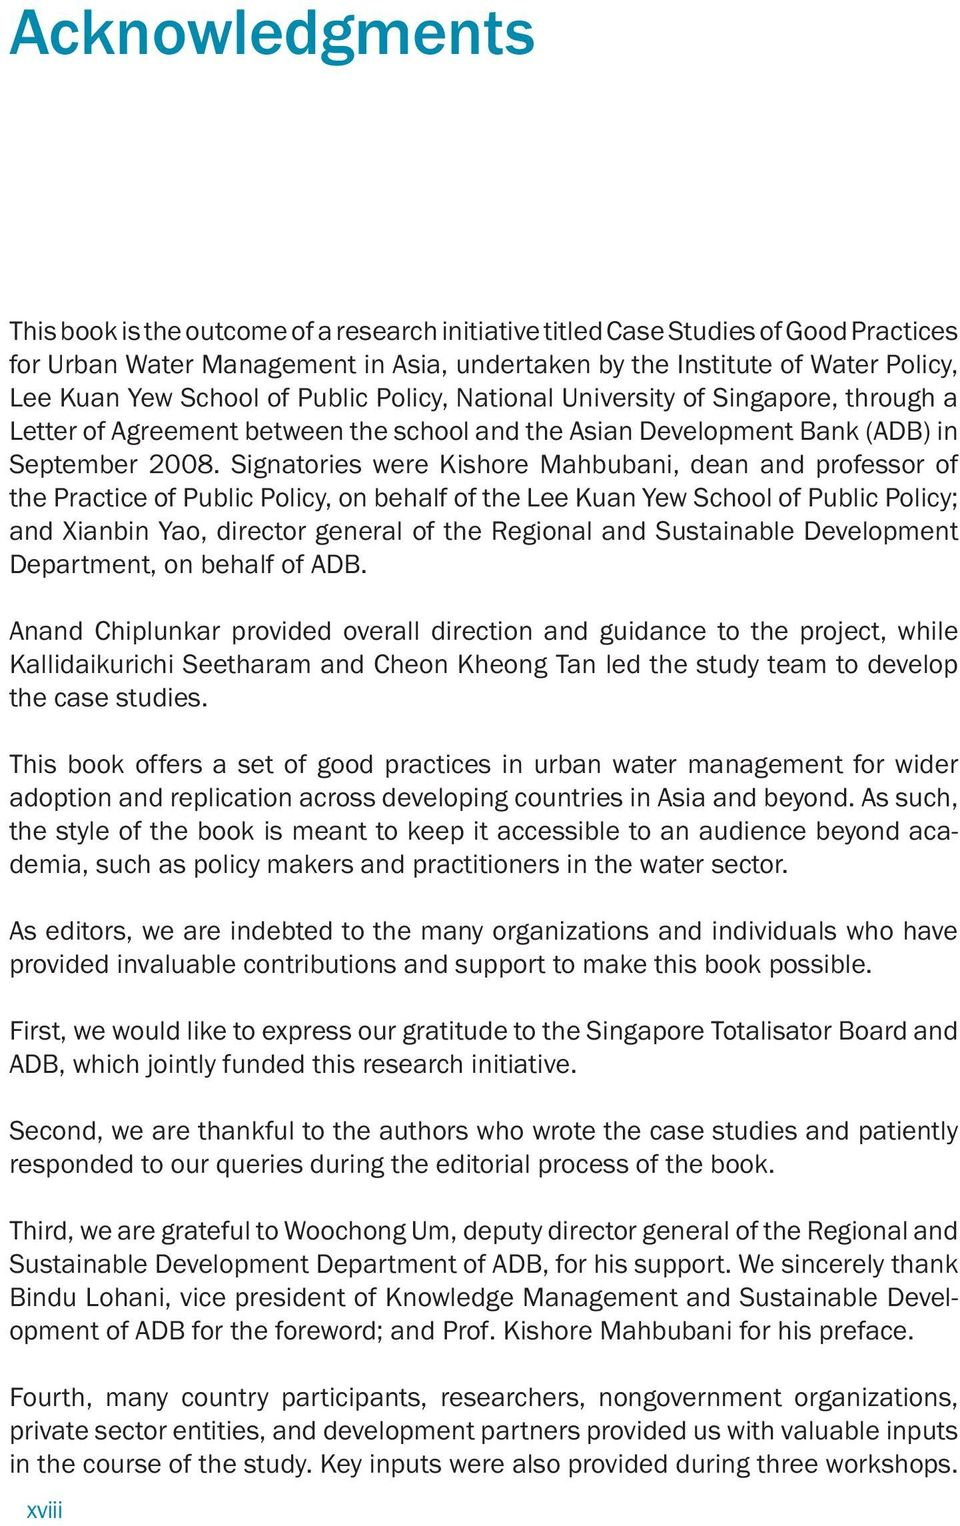 Signatories were Kishore Mahbubani, dean and professor of the Practice of Public Policy, on behalf of the Lee Kuan Yew School of Public Policy; and Xianbin Yao, director general of the Regional and